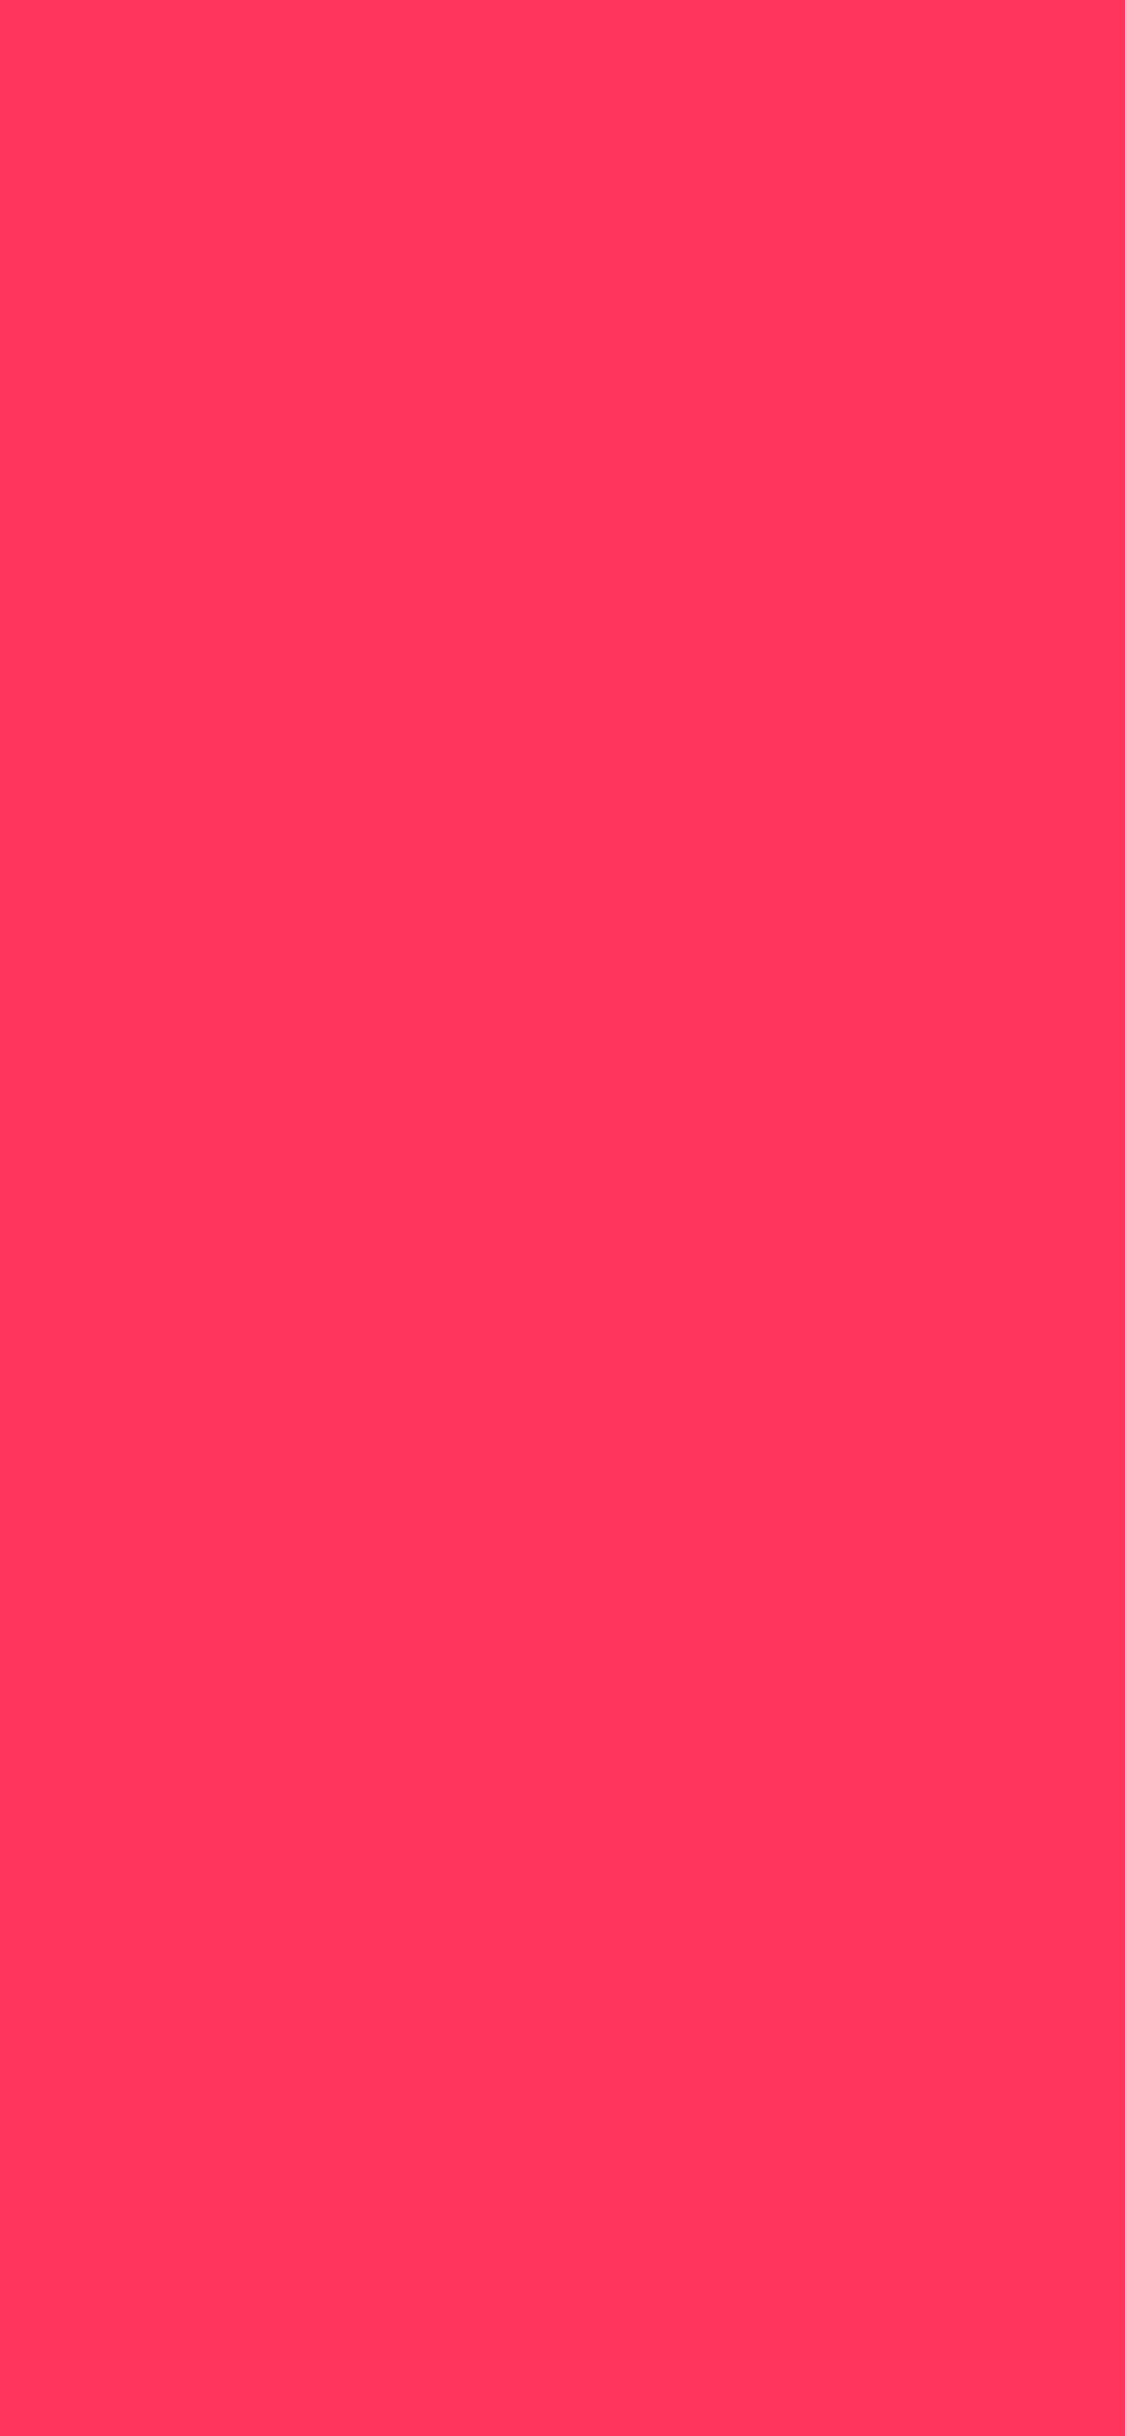 1125x2436 Radical Red Solid Color Background